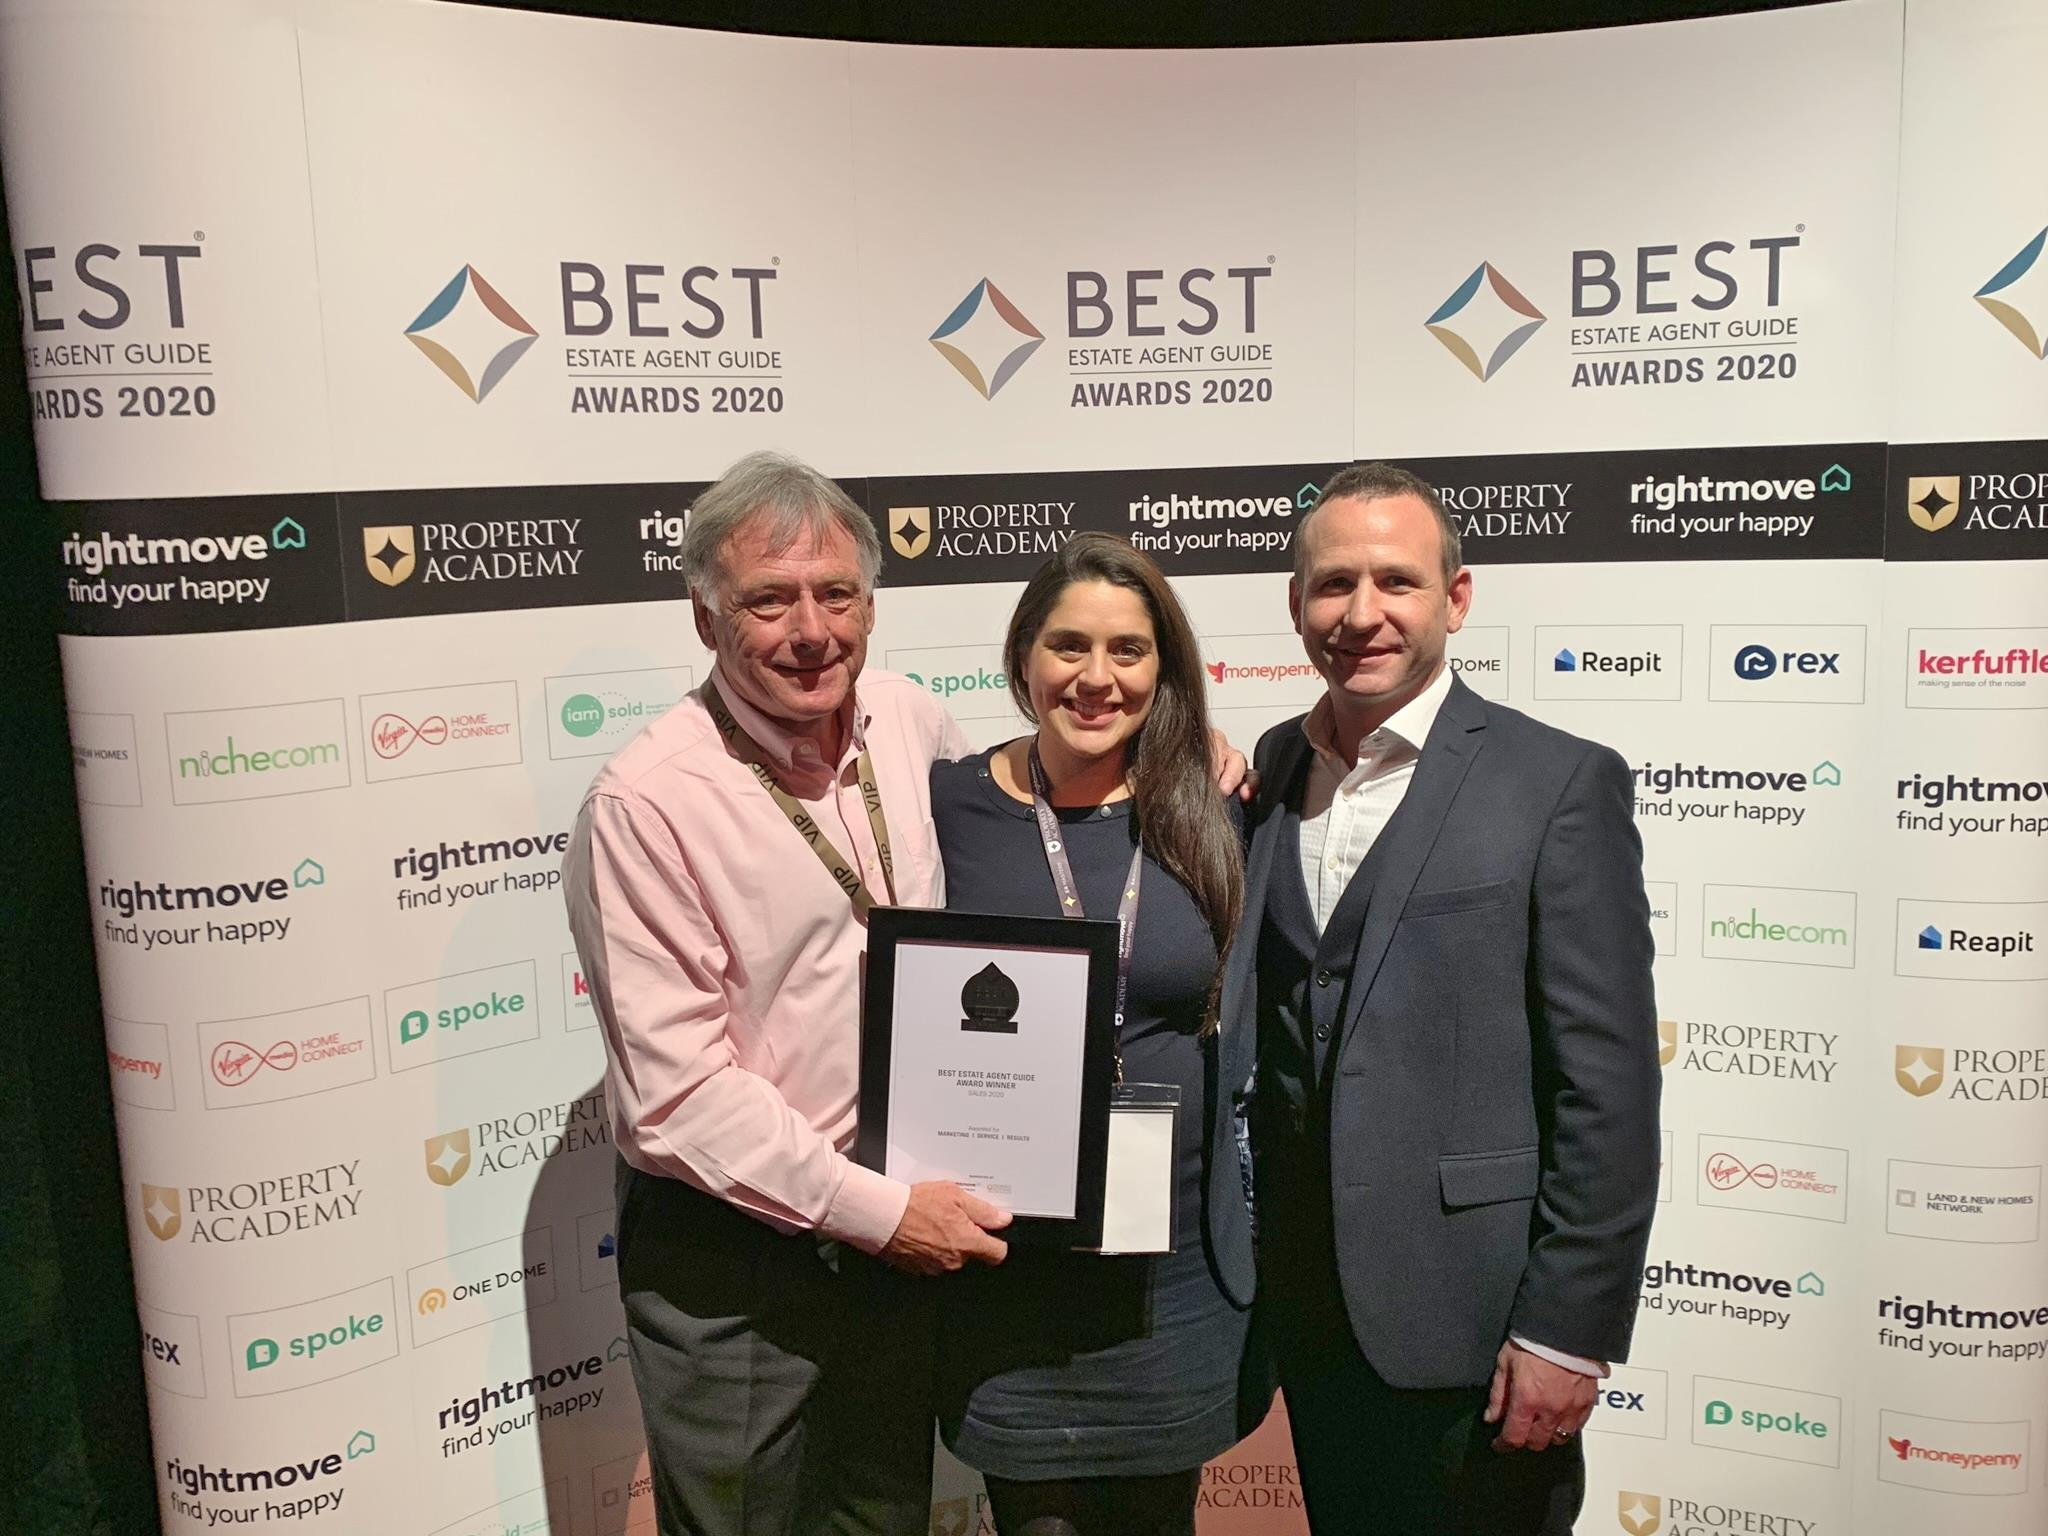 EA Master Awards & Best Estate Agents Guide 2020